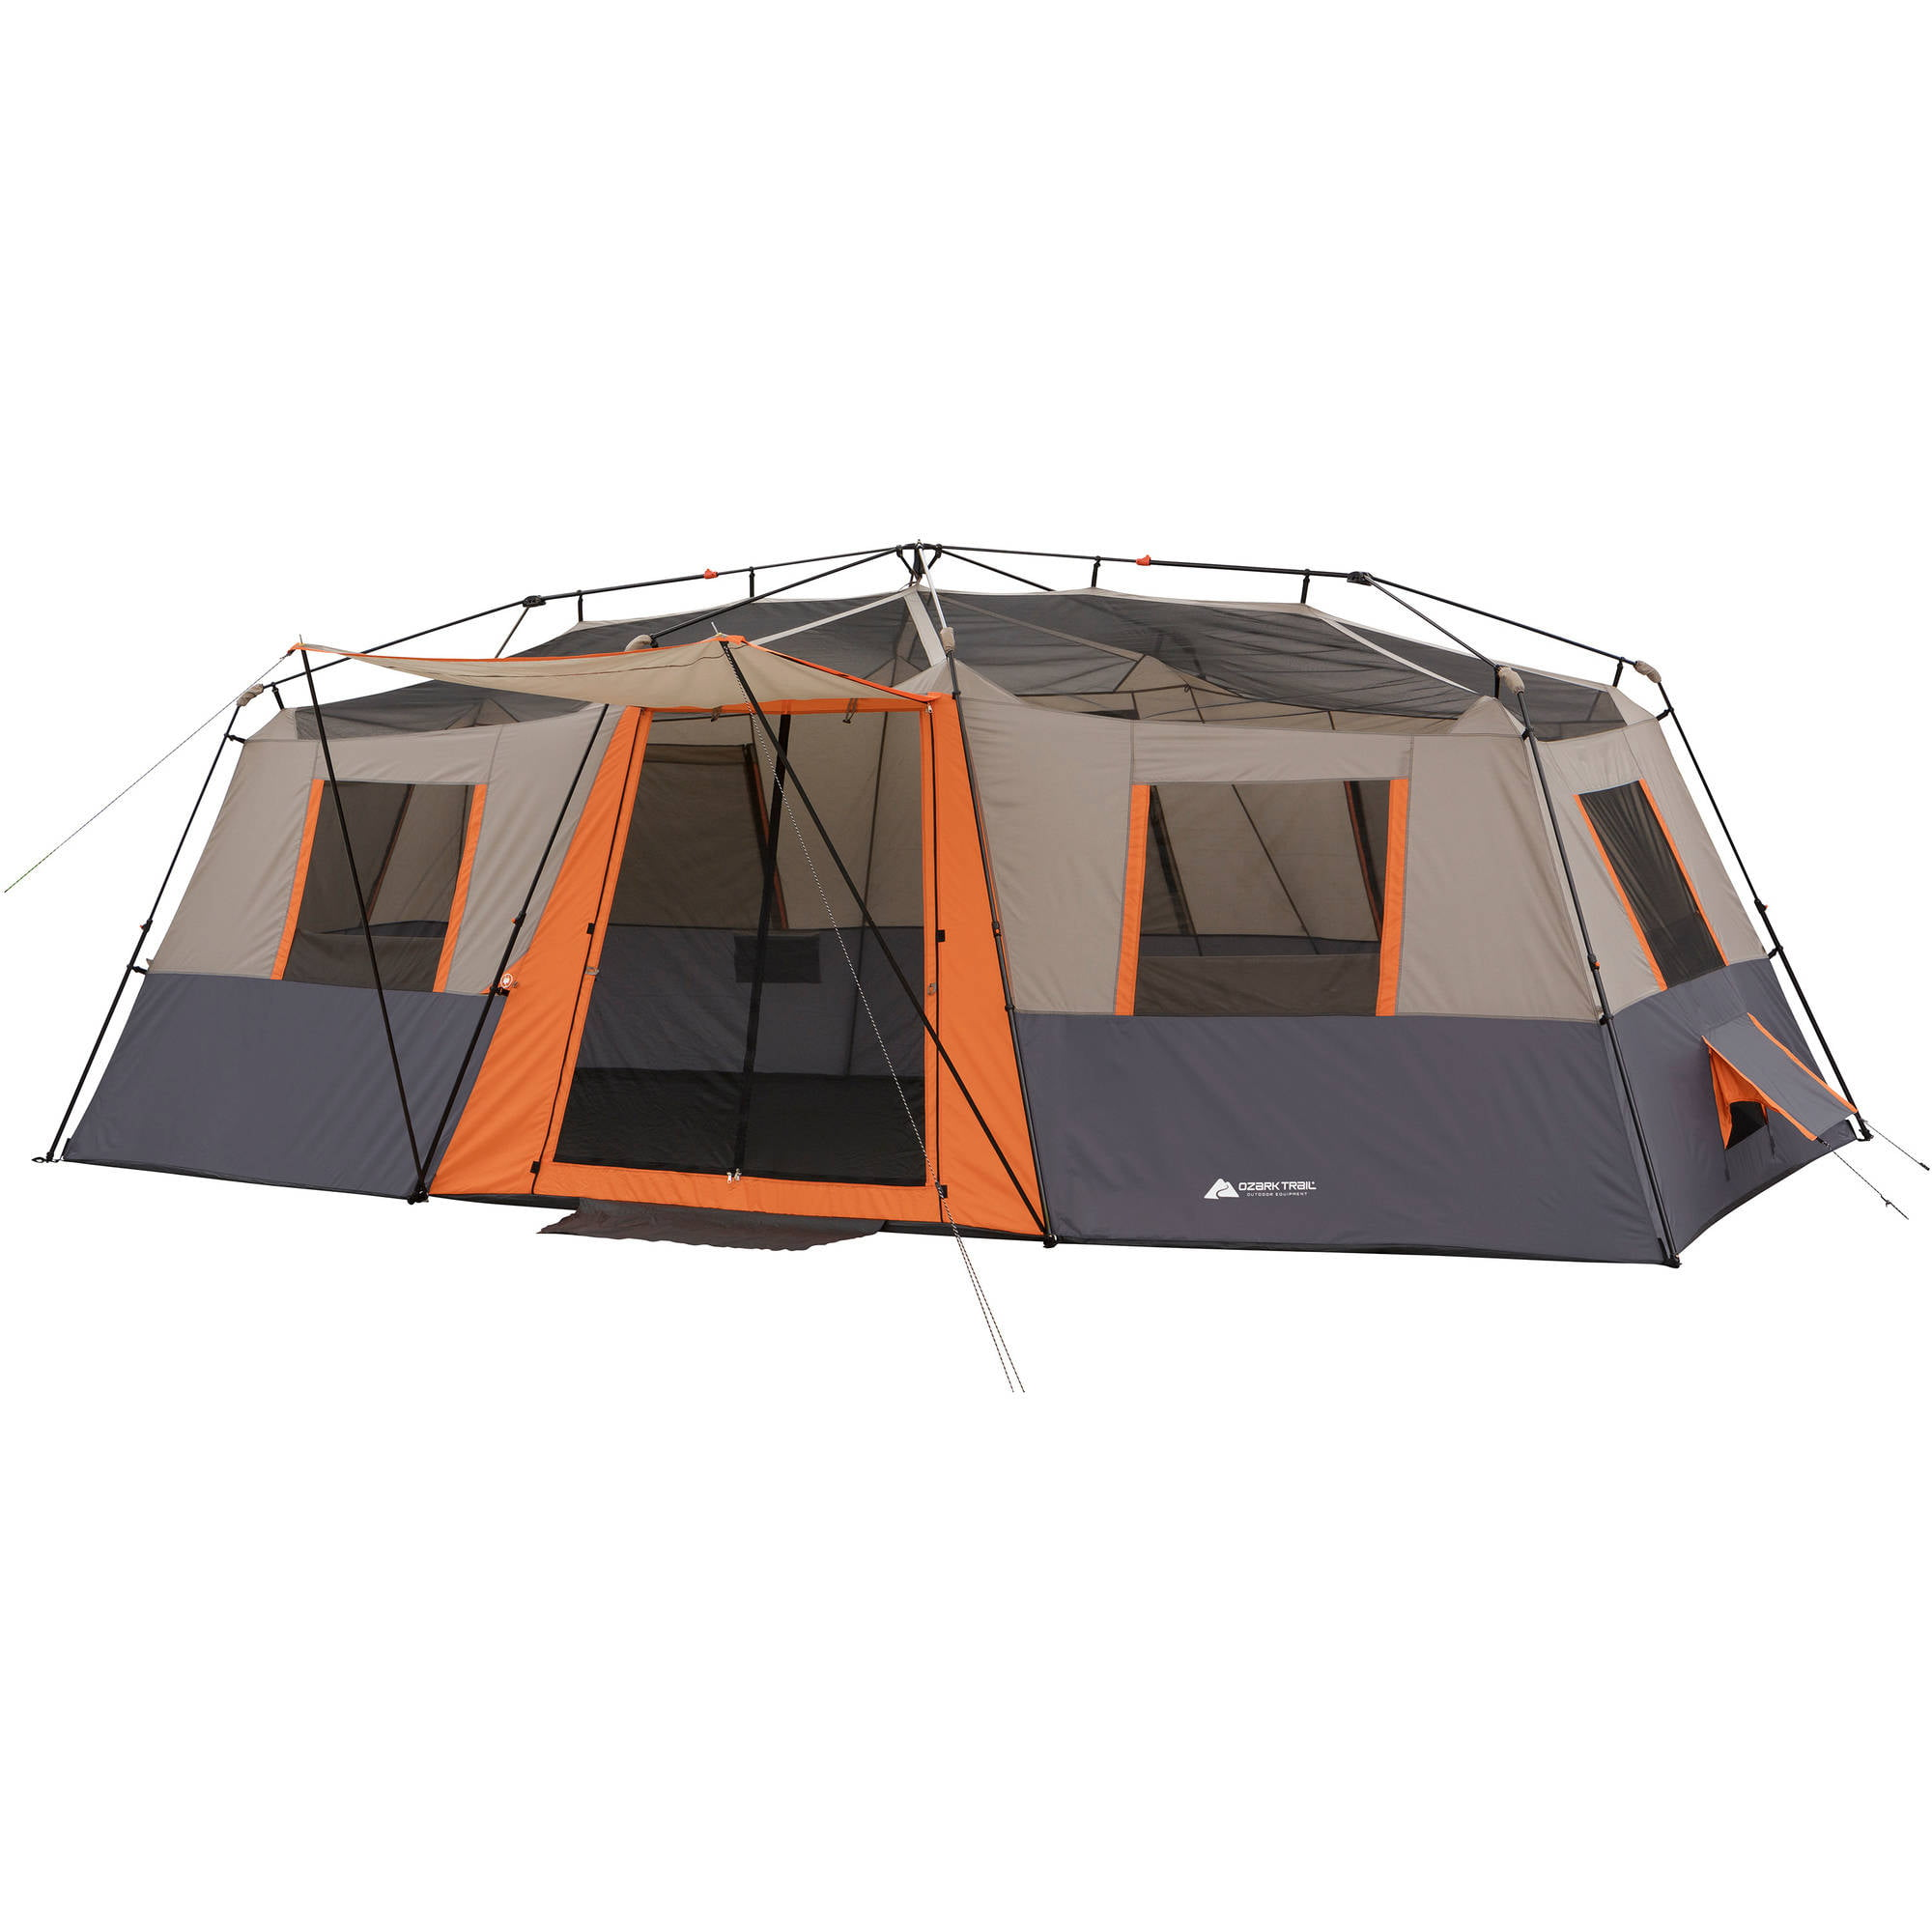 Ozark Trail 12 Person 3 Room Instant Cabin Tent with 2 Airbeds and 2 Chairs Value Bundle - Walmart.com  sc 1 st  Walmart : 12 person instant tent - memphite.com